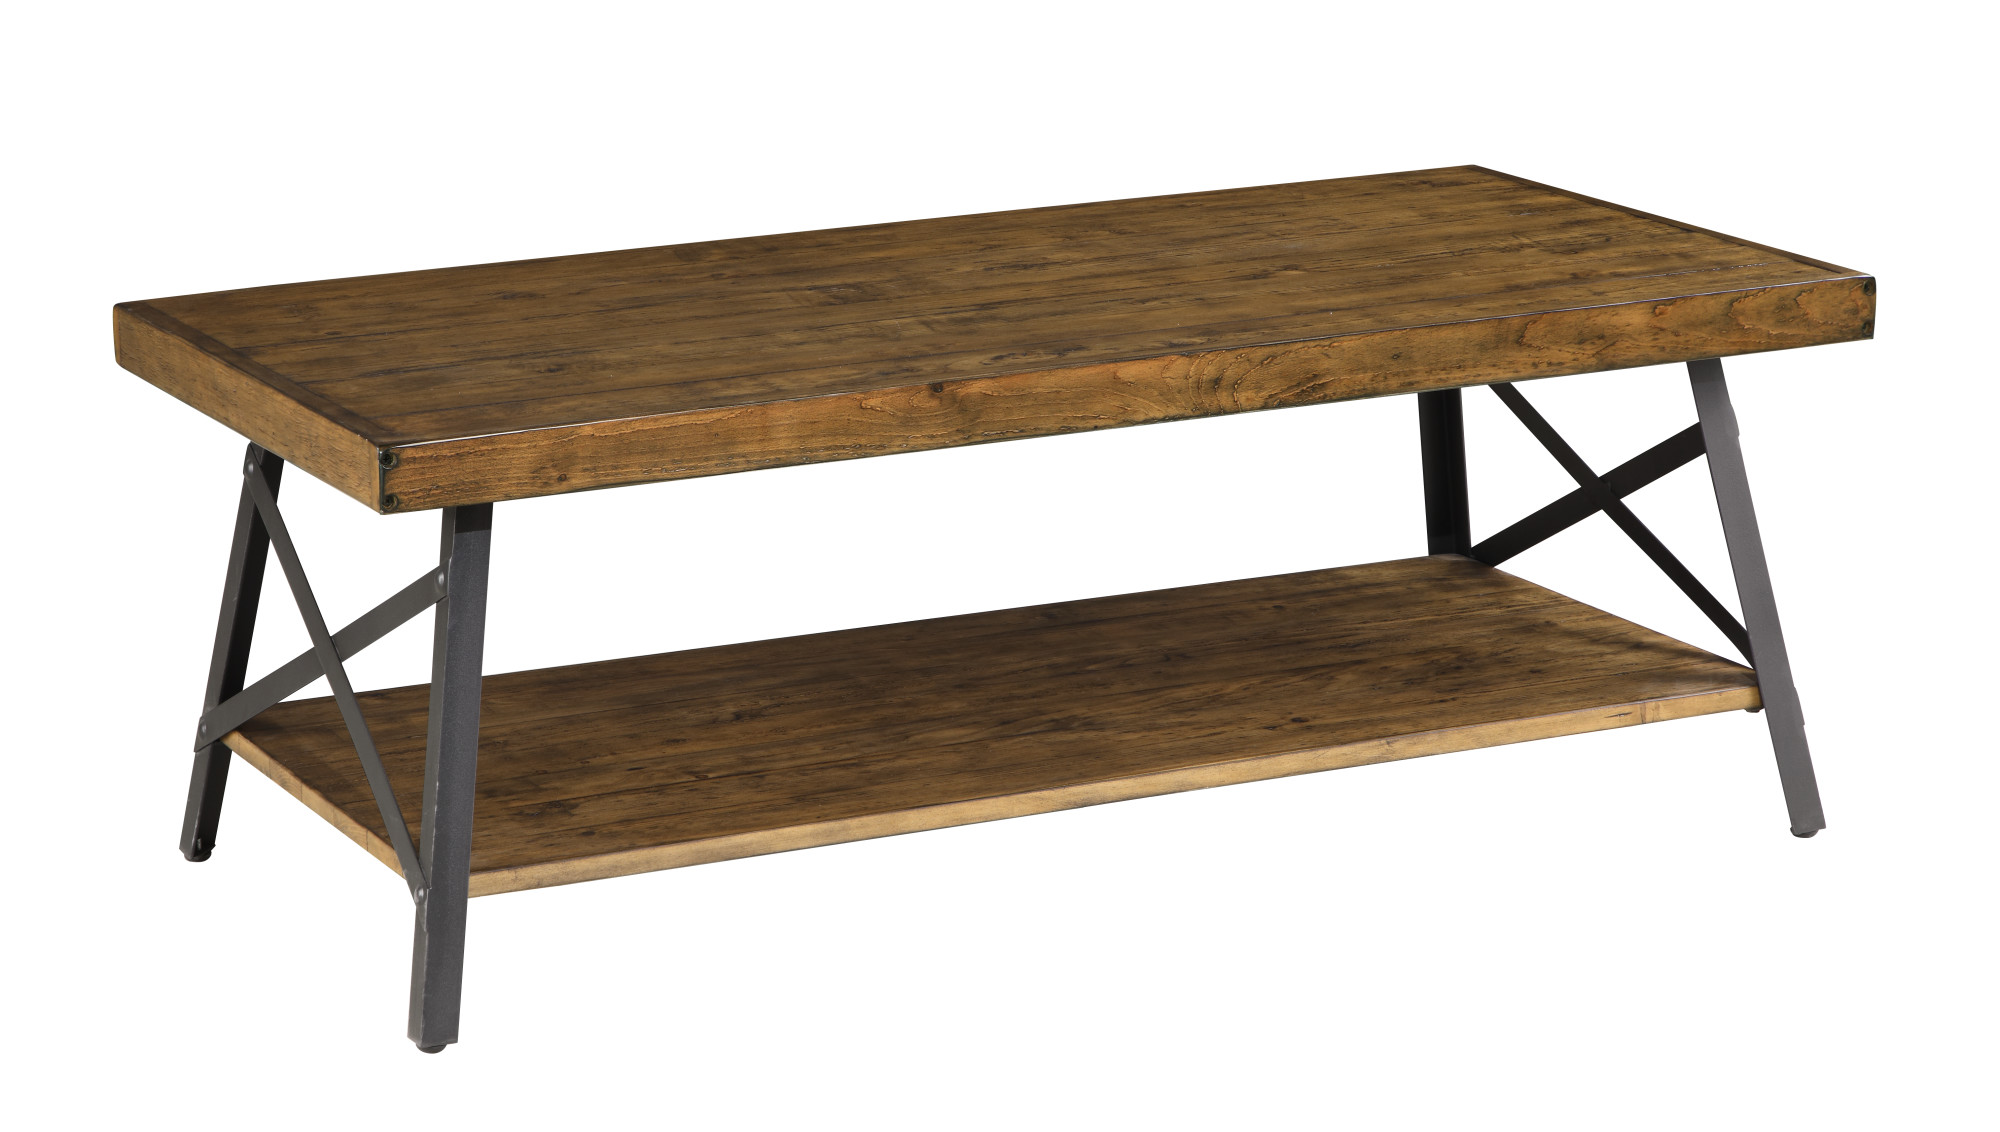 """Emerald Home Chandler Pine Brown 48"""" Coffee Table with Solid Wood Top, Metal Base, And Open... by Emerald Home Furnishings, LLC"""